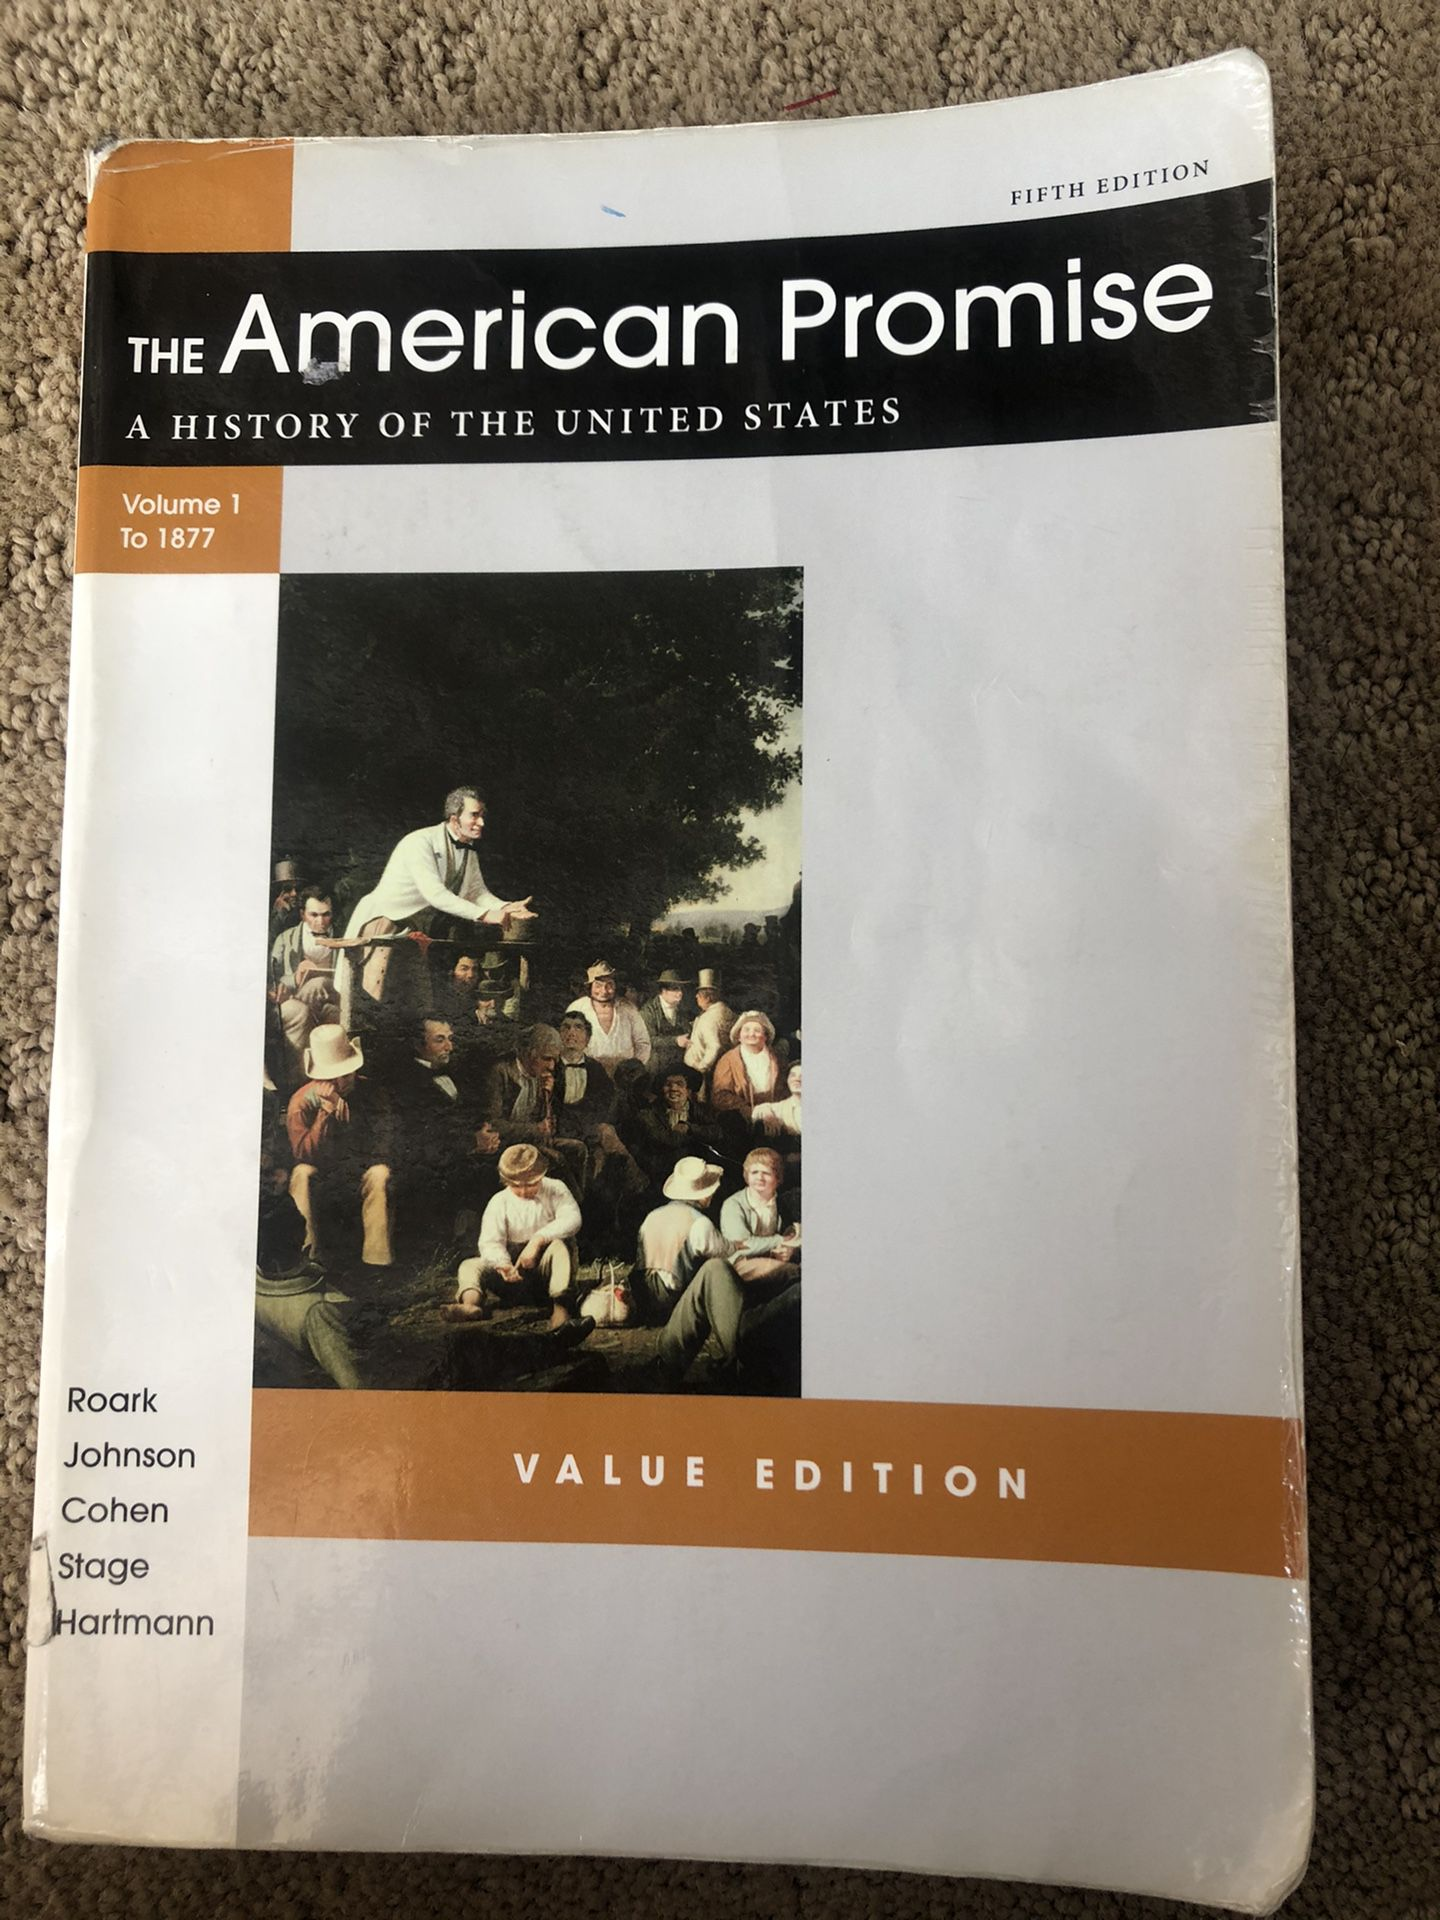 The American promise volume 1